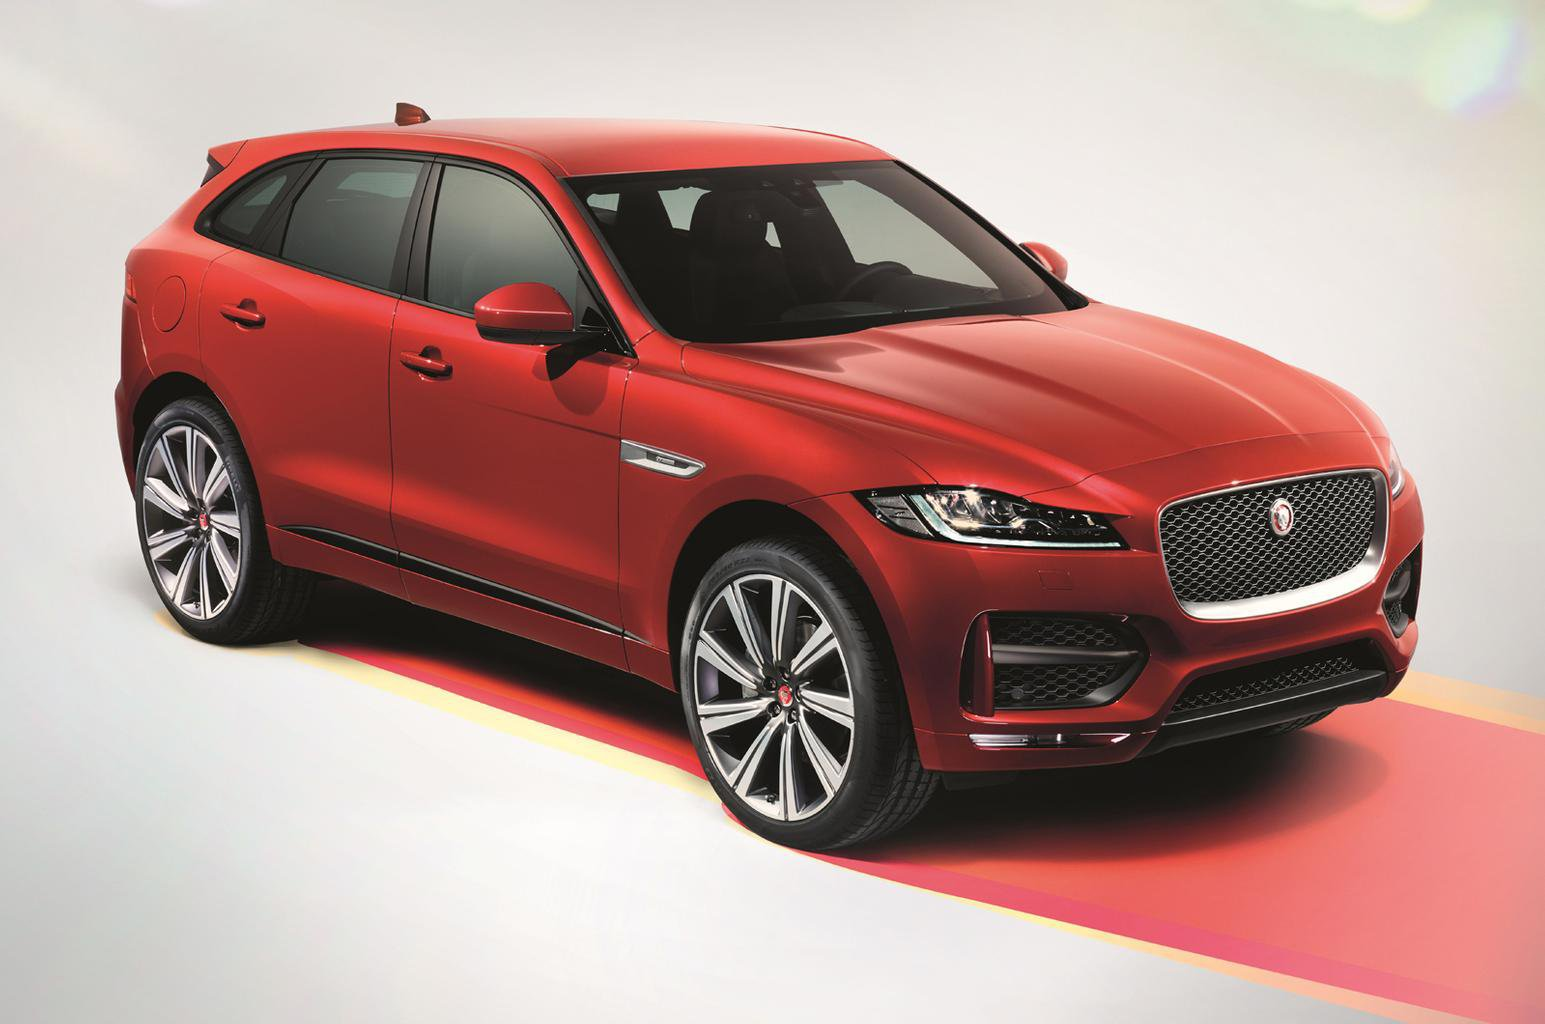 Jaguar F-Pace - exclusive reader test team preview